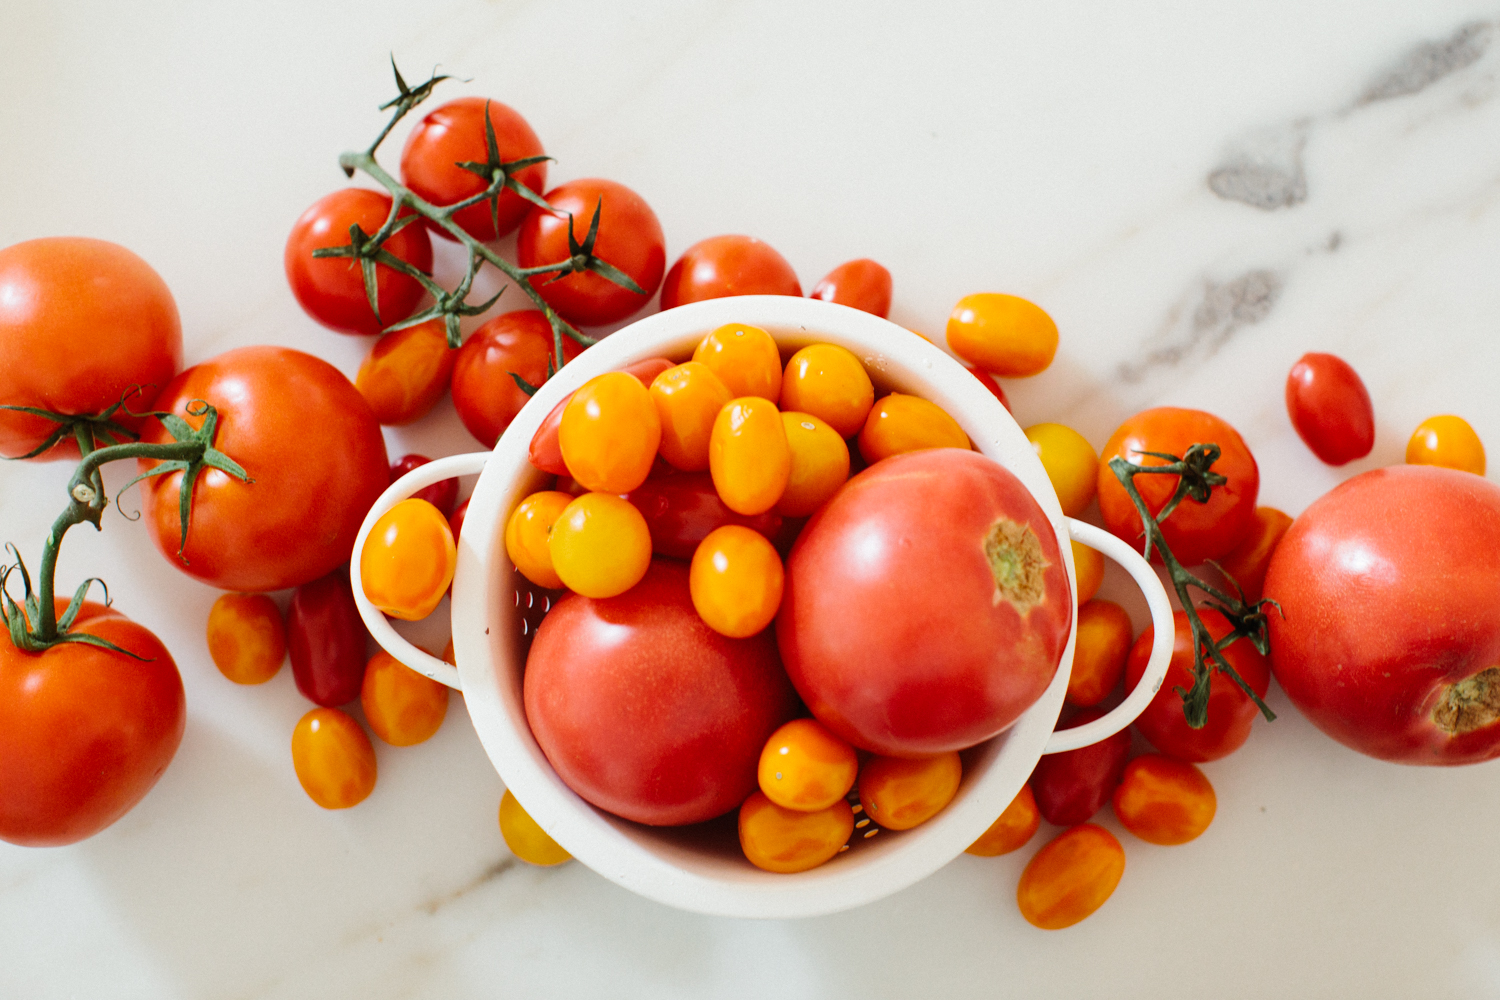 pile of tomatoes for tomato soup